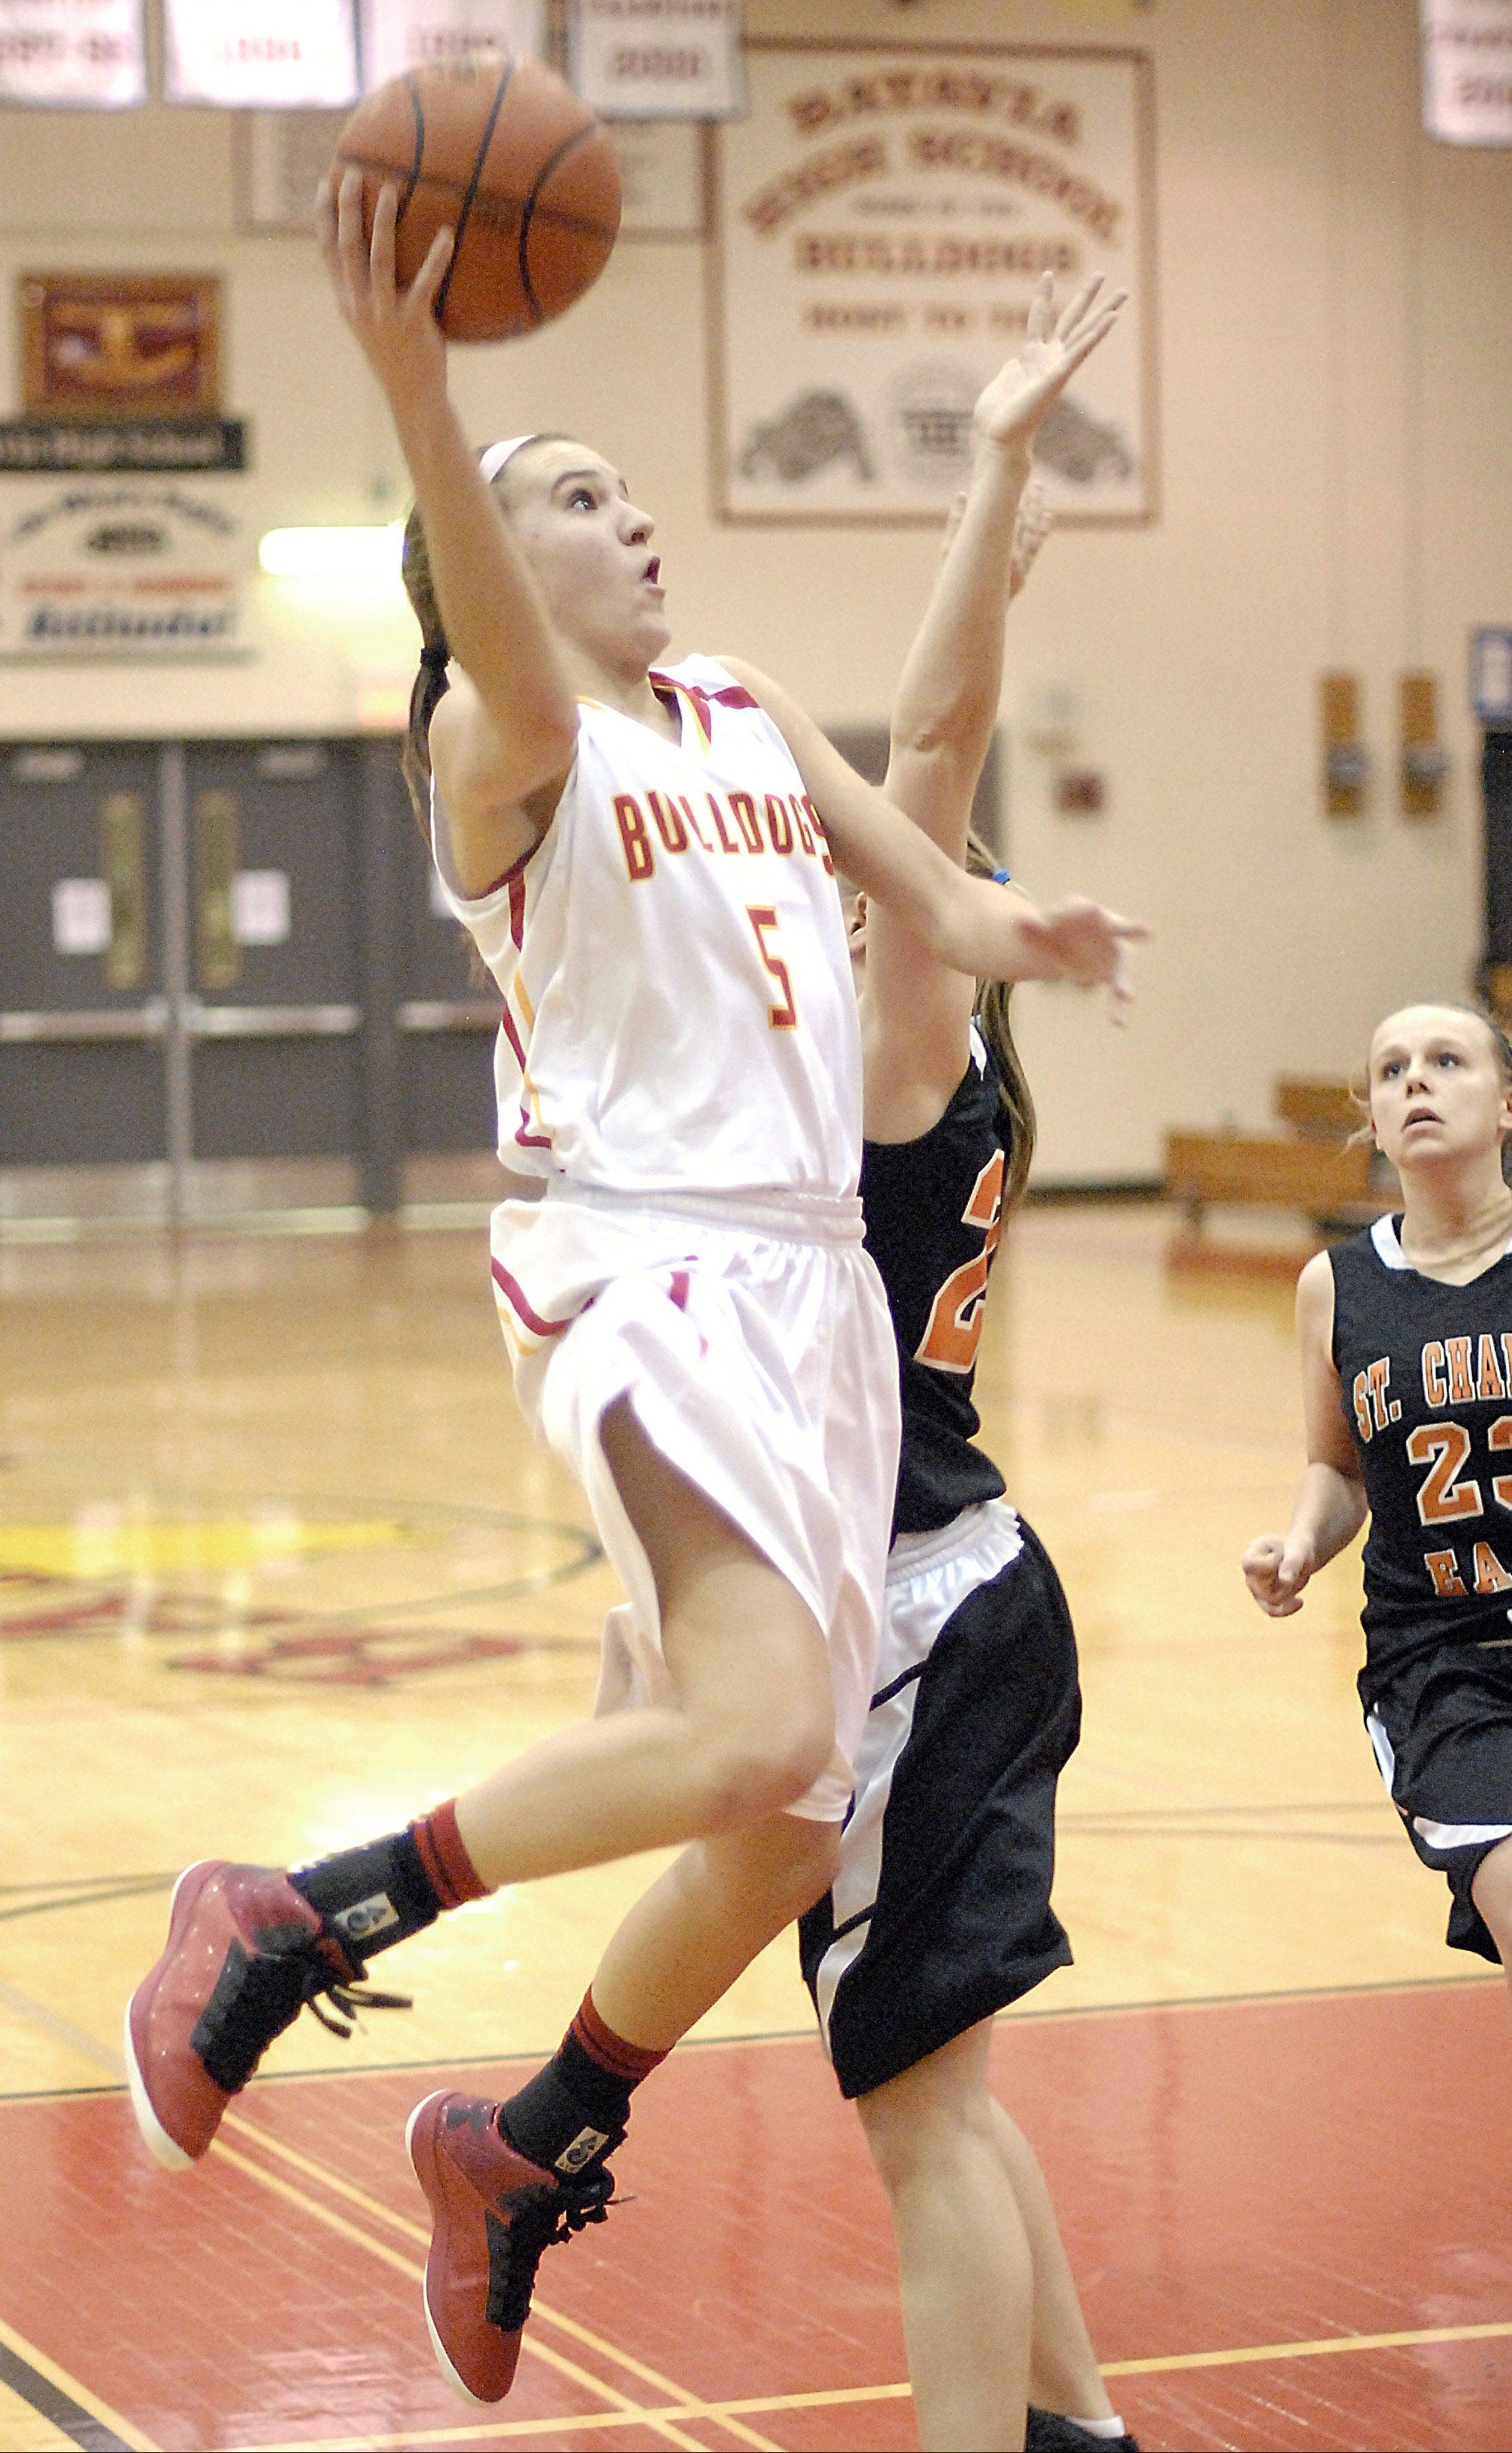 Batavia junior Liza Fruendt averaged 19.7 points, 4.4 rebounds, 2.9 assists and 1.6 steals a game while sinking 78 percent of her free throws.